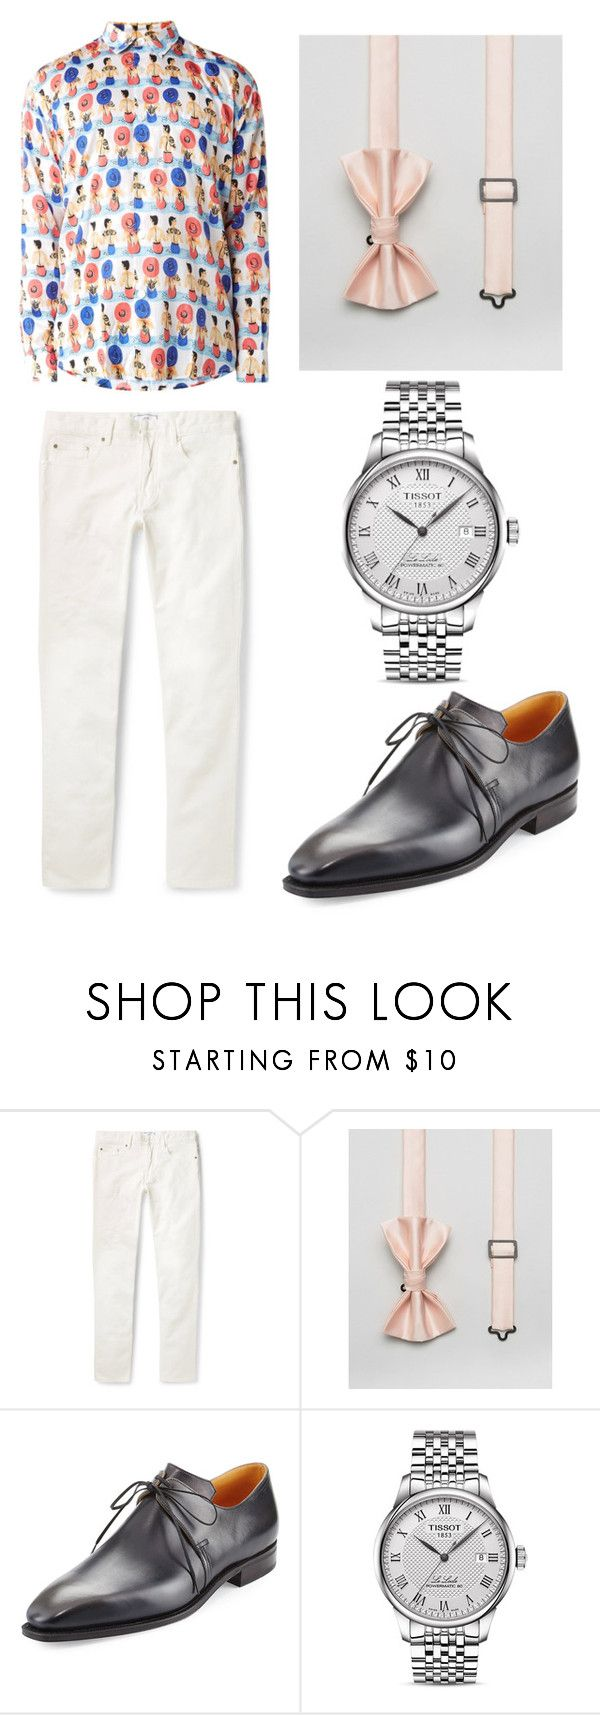 """Australian designer"" by sparklepieceblog on Polyvore featuring ASOS, Corthay, Tissot, men's fashion and menswear"